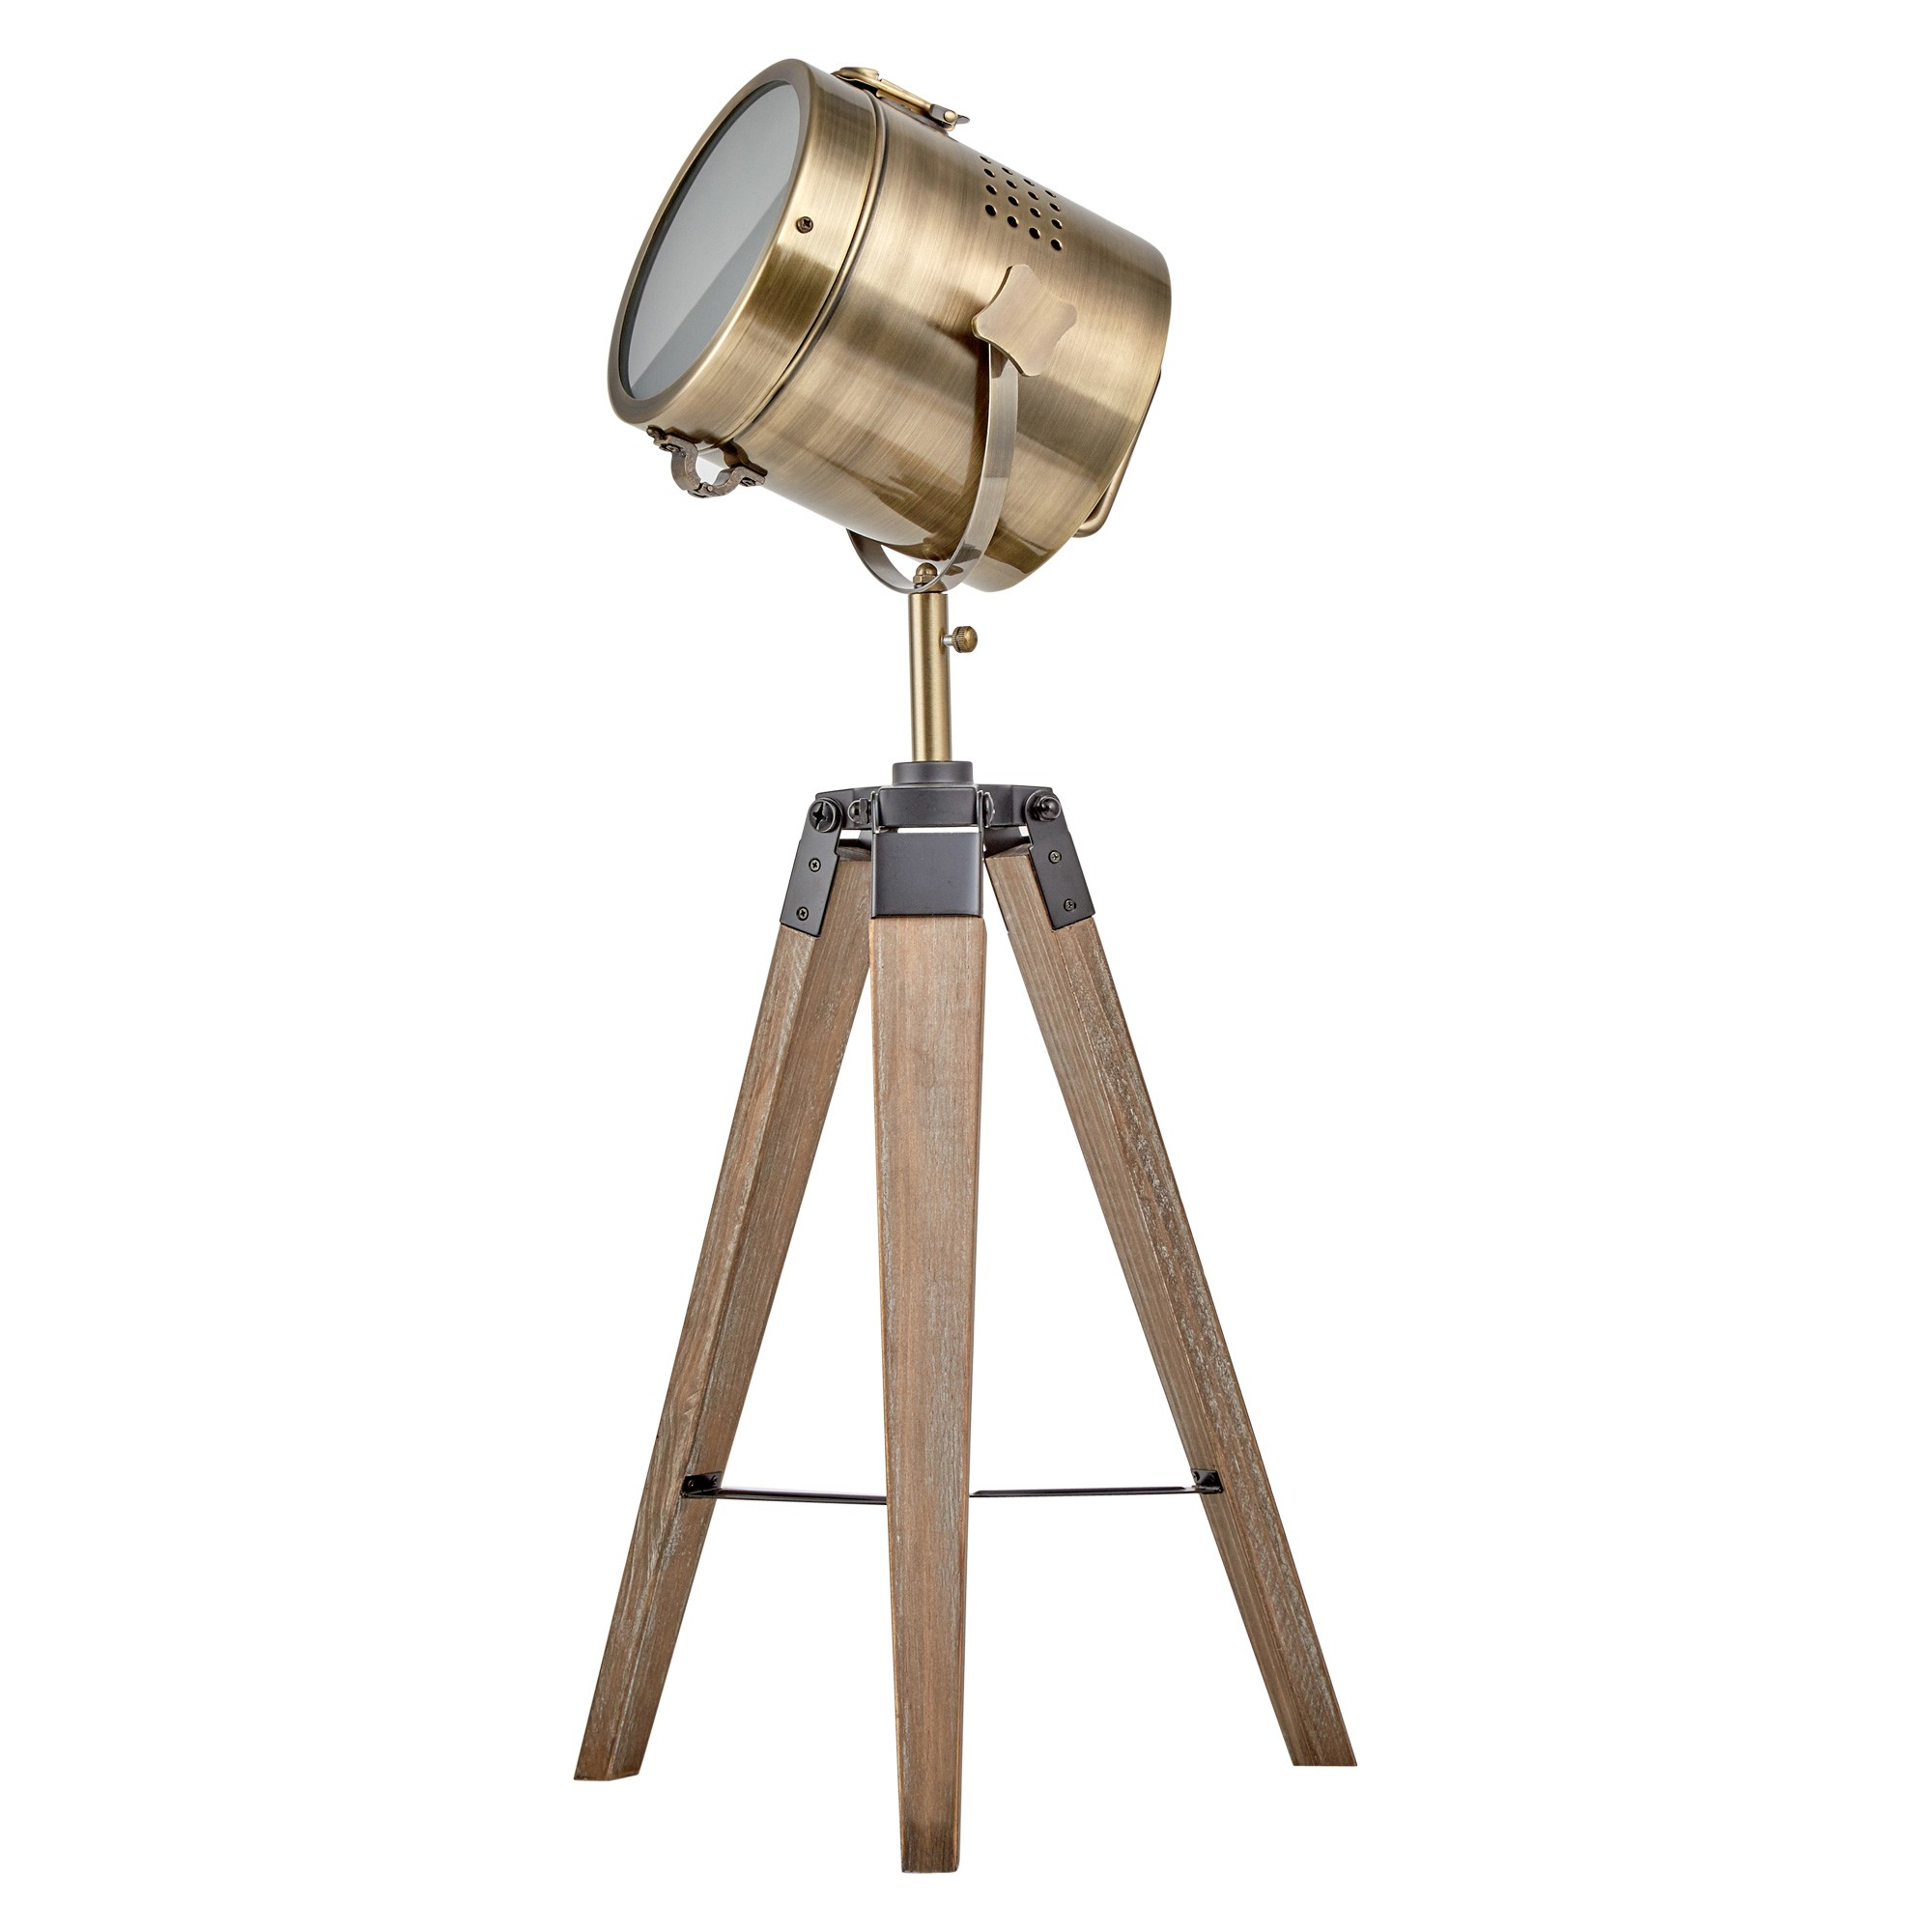 Beacon Timber Tripod Spotlight Table Lamp, Dark Oak / Antique Brass